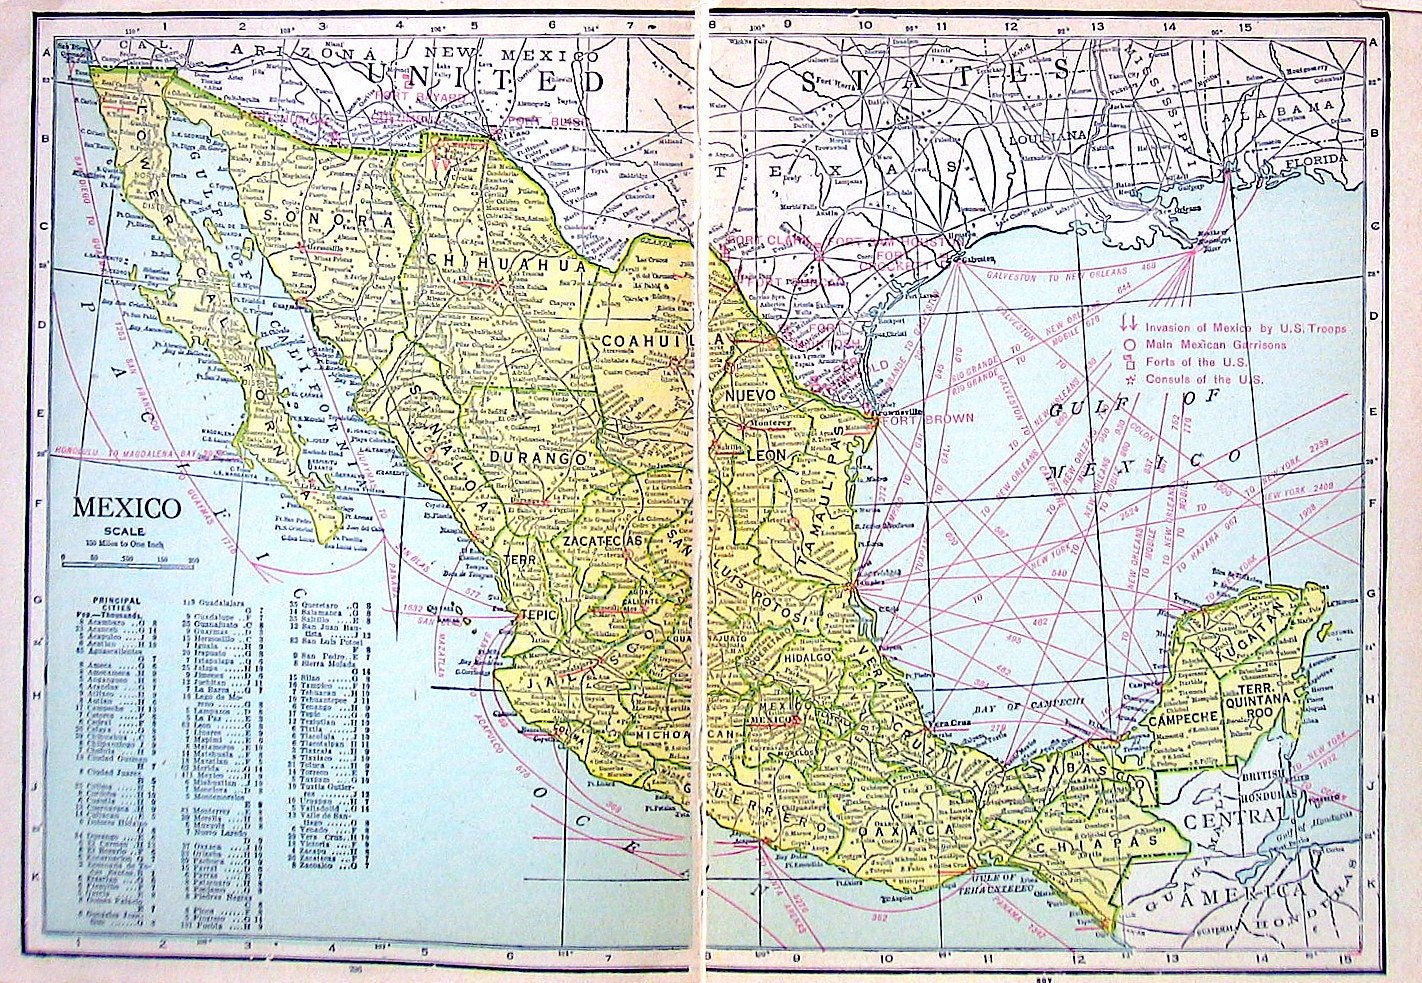 This is an image of Adaptable Printable Map of Mexico